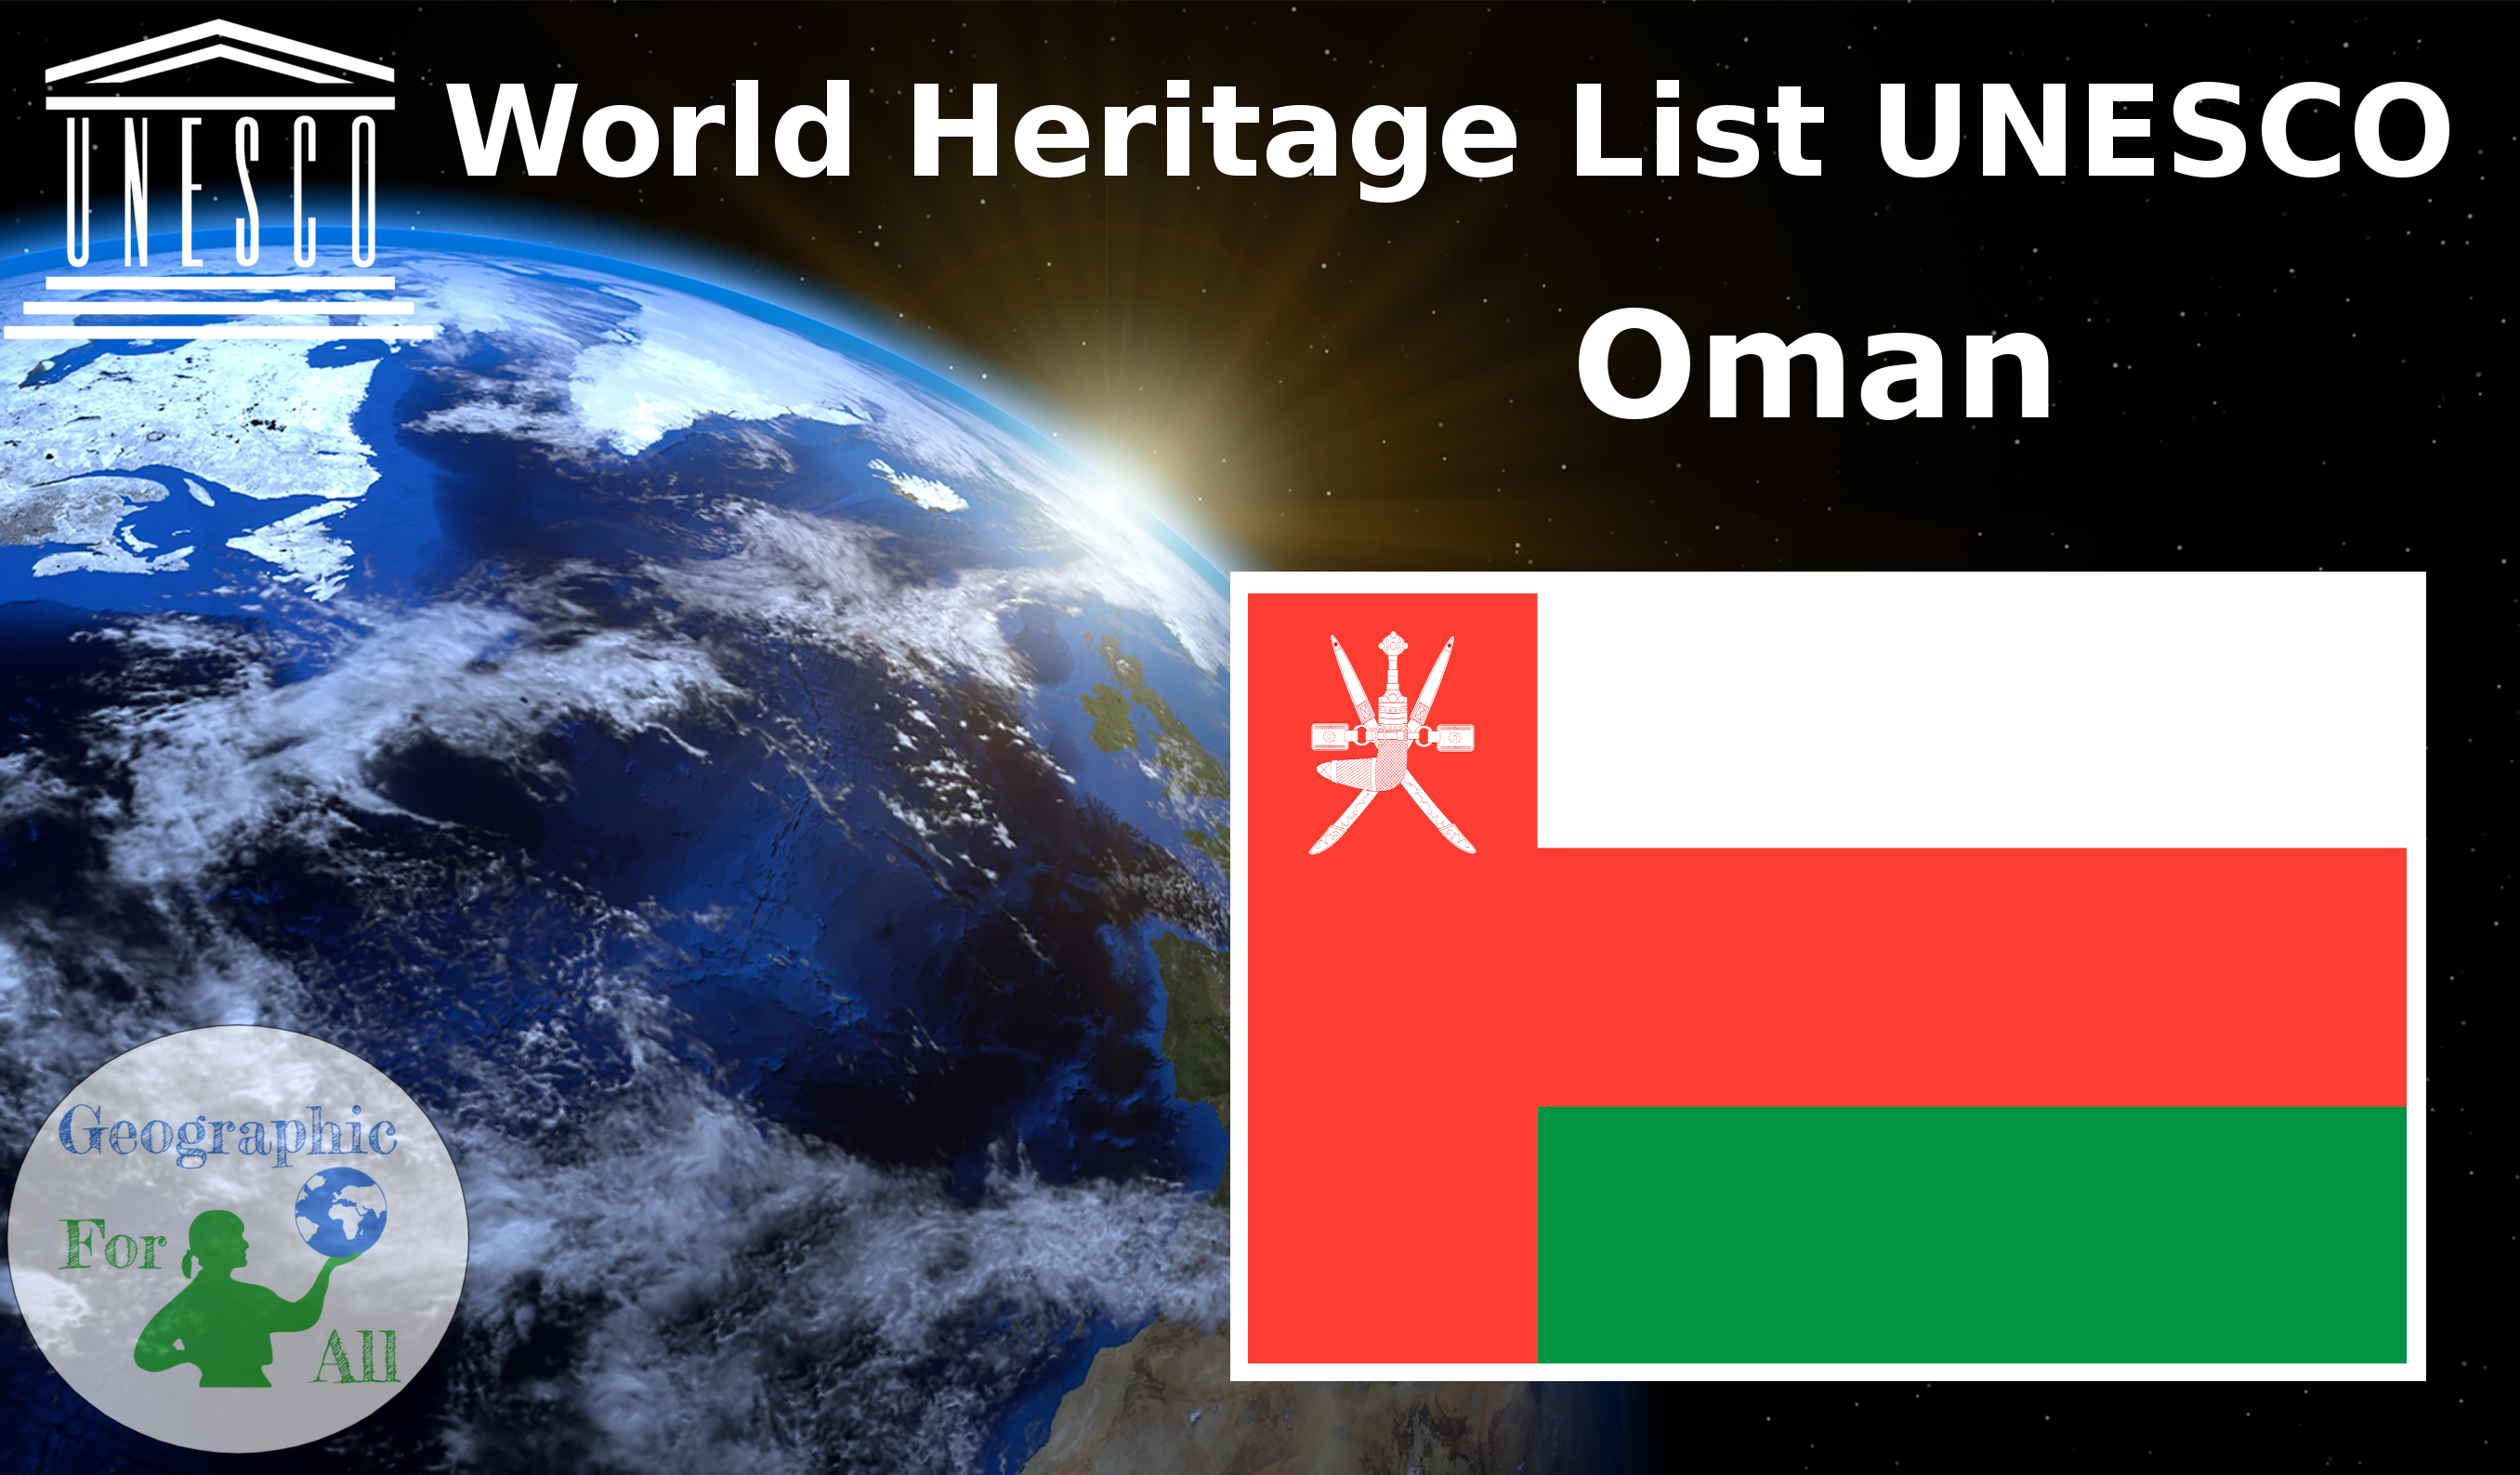 World Heritage List UNESCO - Oman